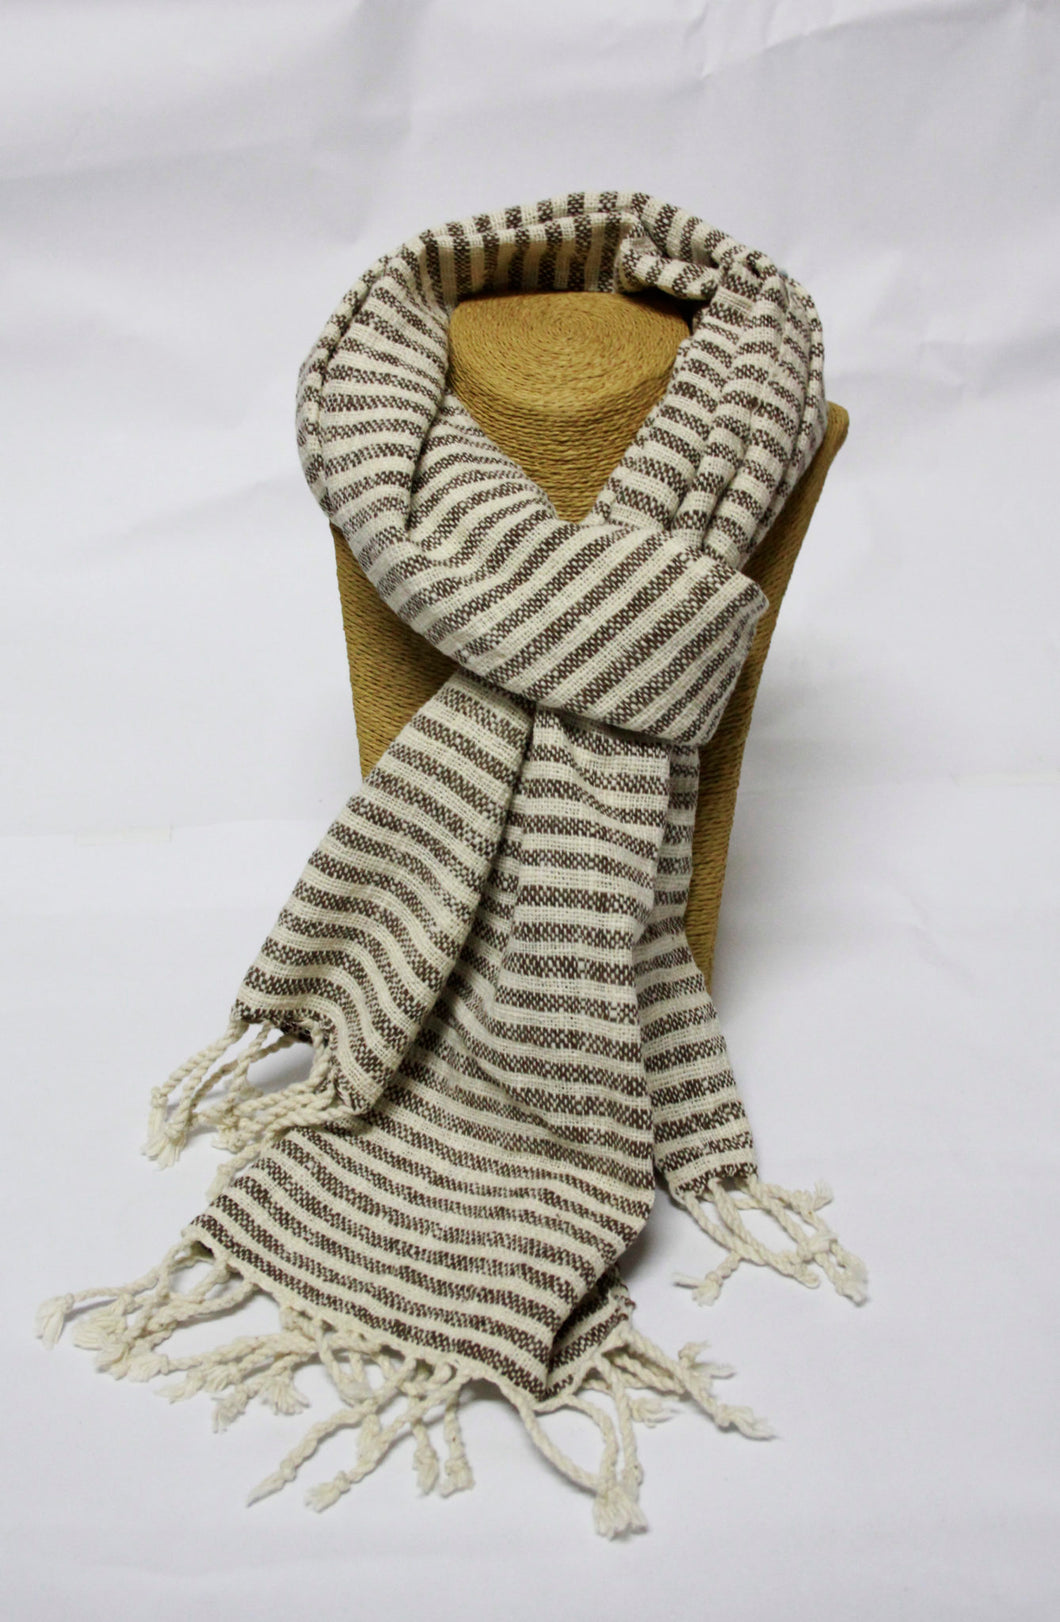 Hand Woven Handspun Cotton Scarf - Fair Trade from Laos - Smoky Mountain Fresh Roast Coffee